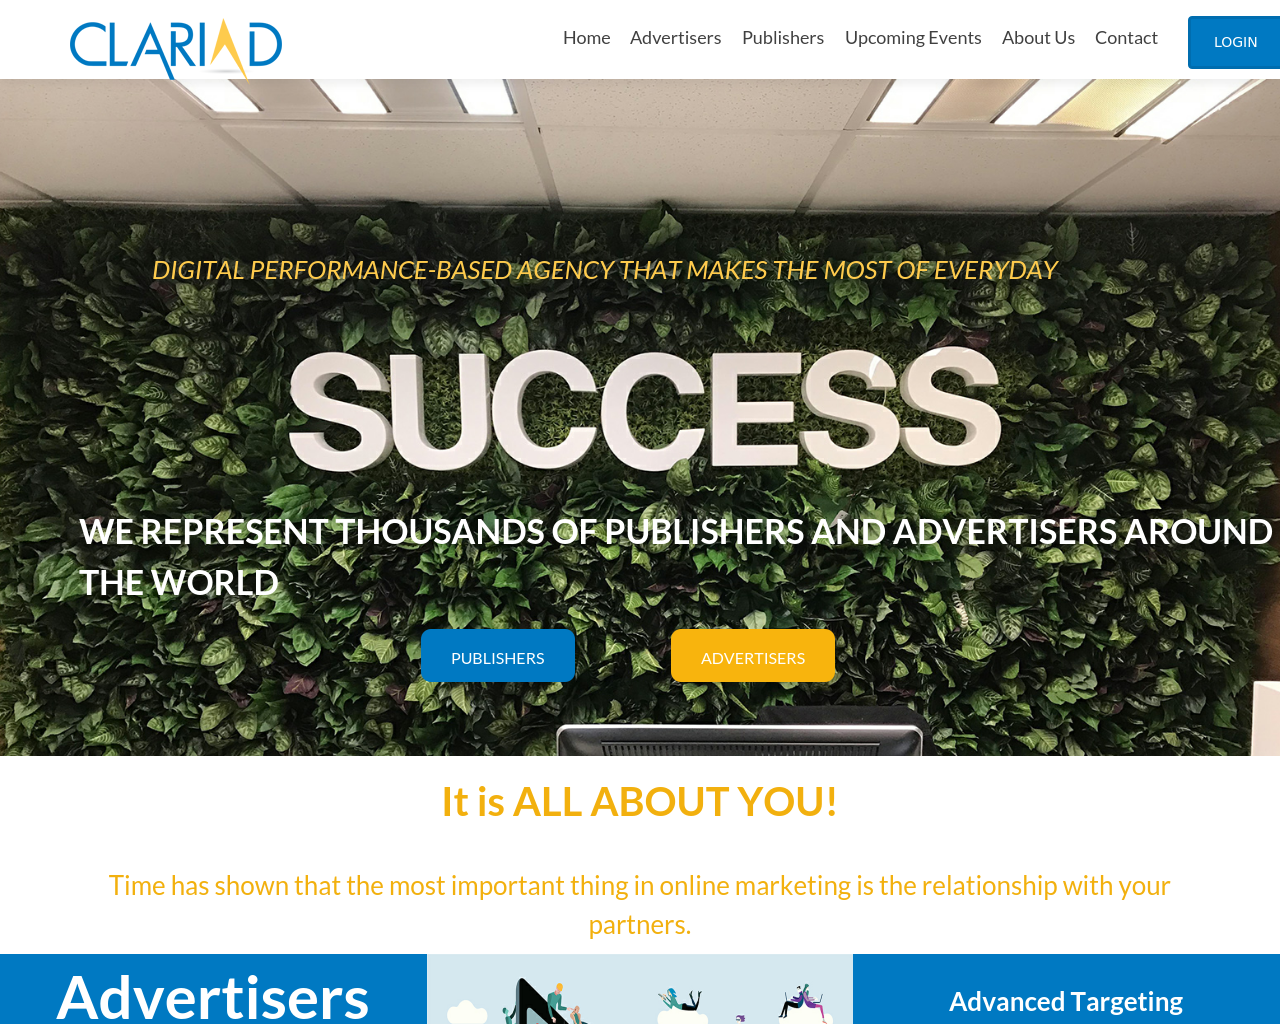 Clariad-Advertising-Reviews-Pricing